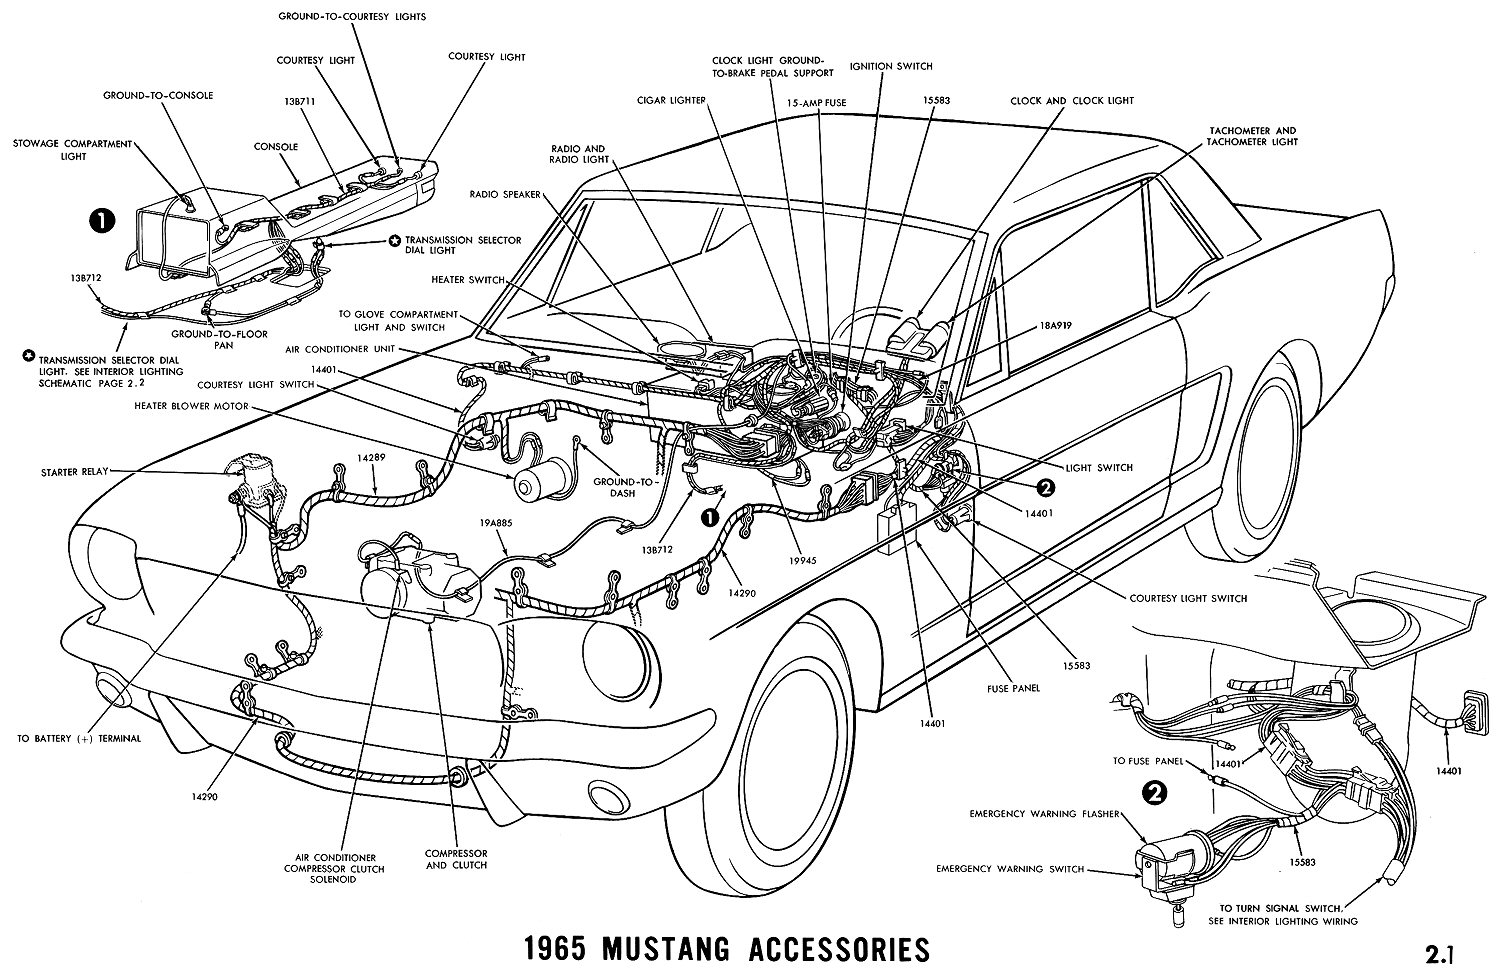 65 mustang accesories 1965 mustang accesories diagram 66 mustang fuse box diagram at creativeand.co